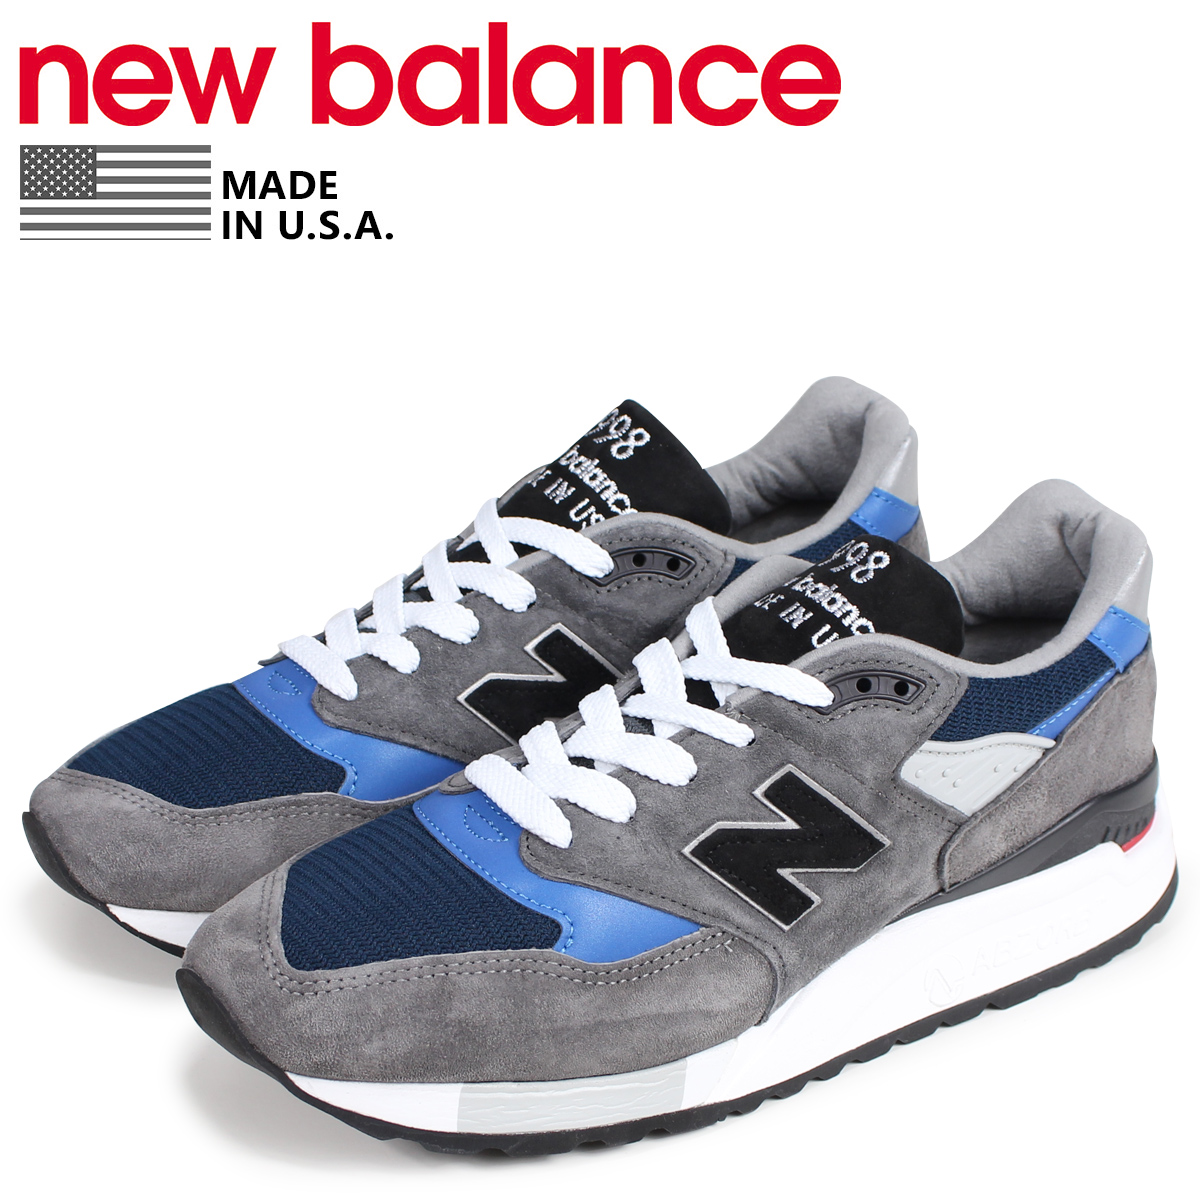 release date 63033 0b3a8 new balance 998 men's New Balance sneakers M998NF D Wise MADE IN USA gray